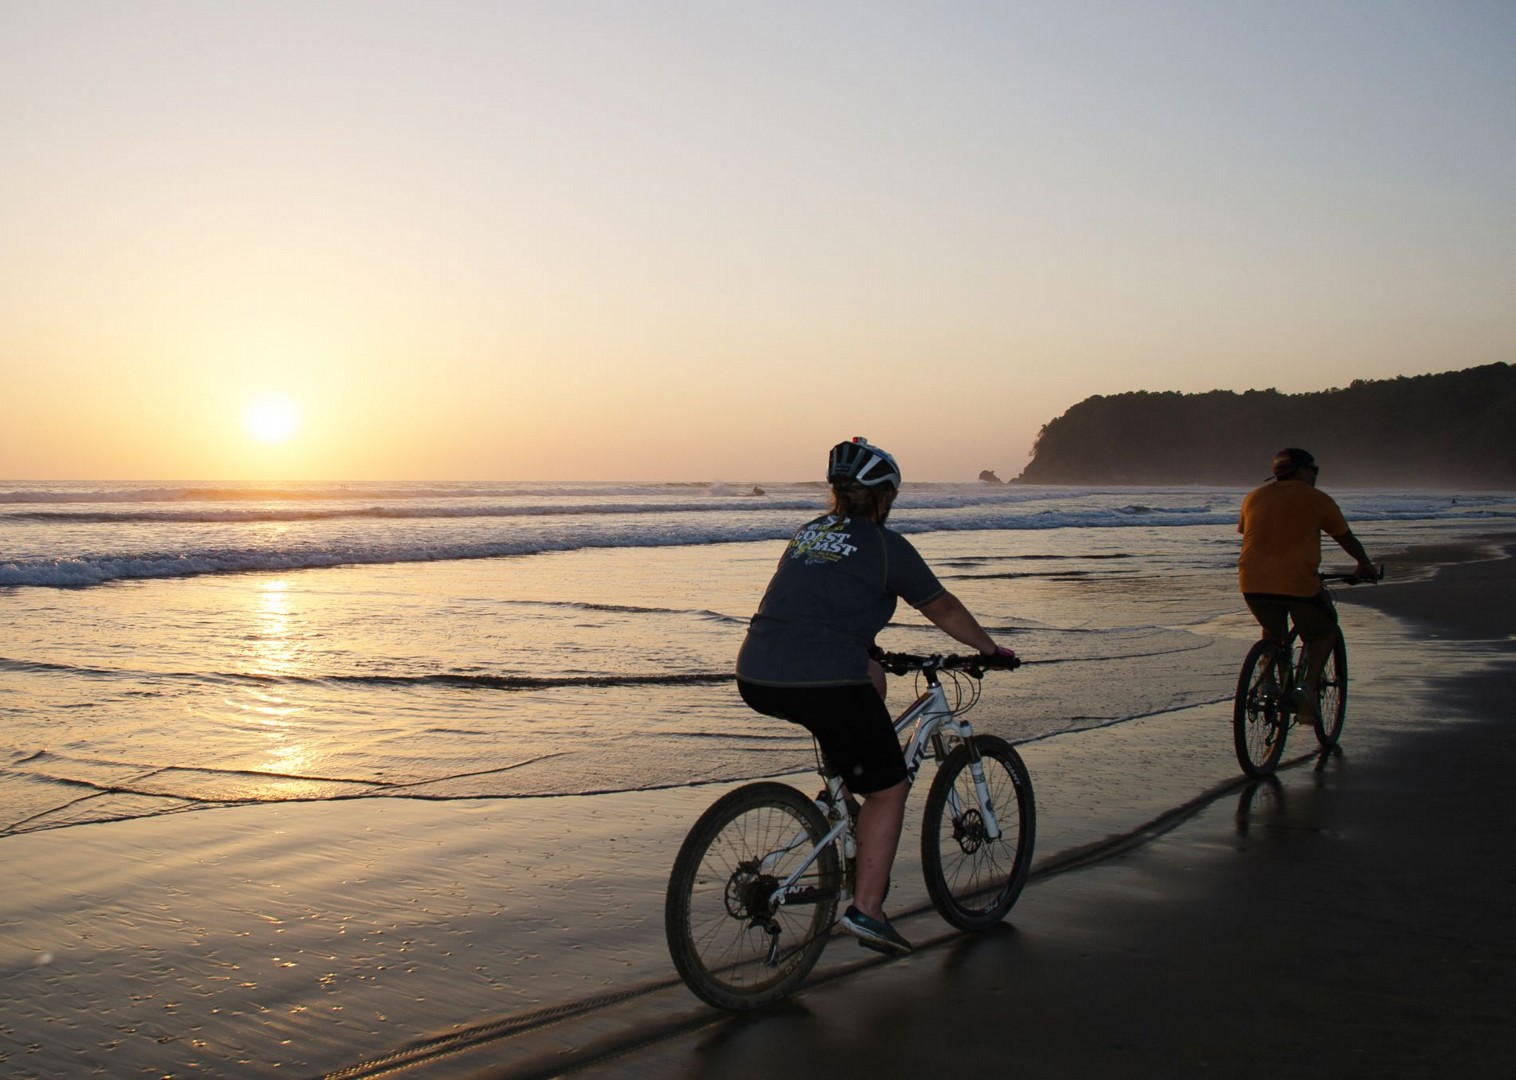 sunset-beach-costa-rica-guided-cycling-holiday.jpg - Costa Rica - Volcanoes and Valleys - Guided Family Cycling Holiday - Family Cycling